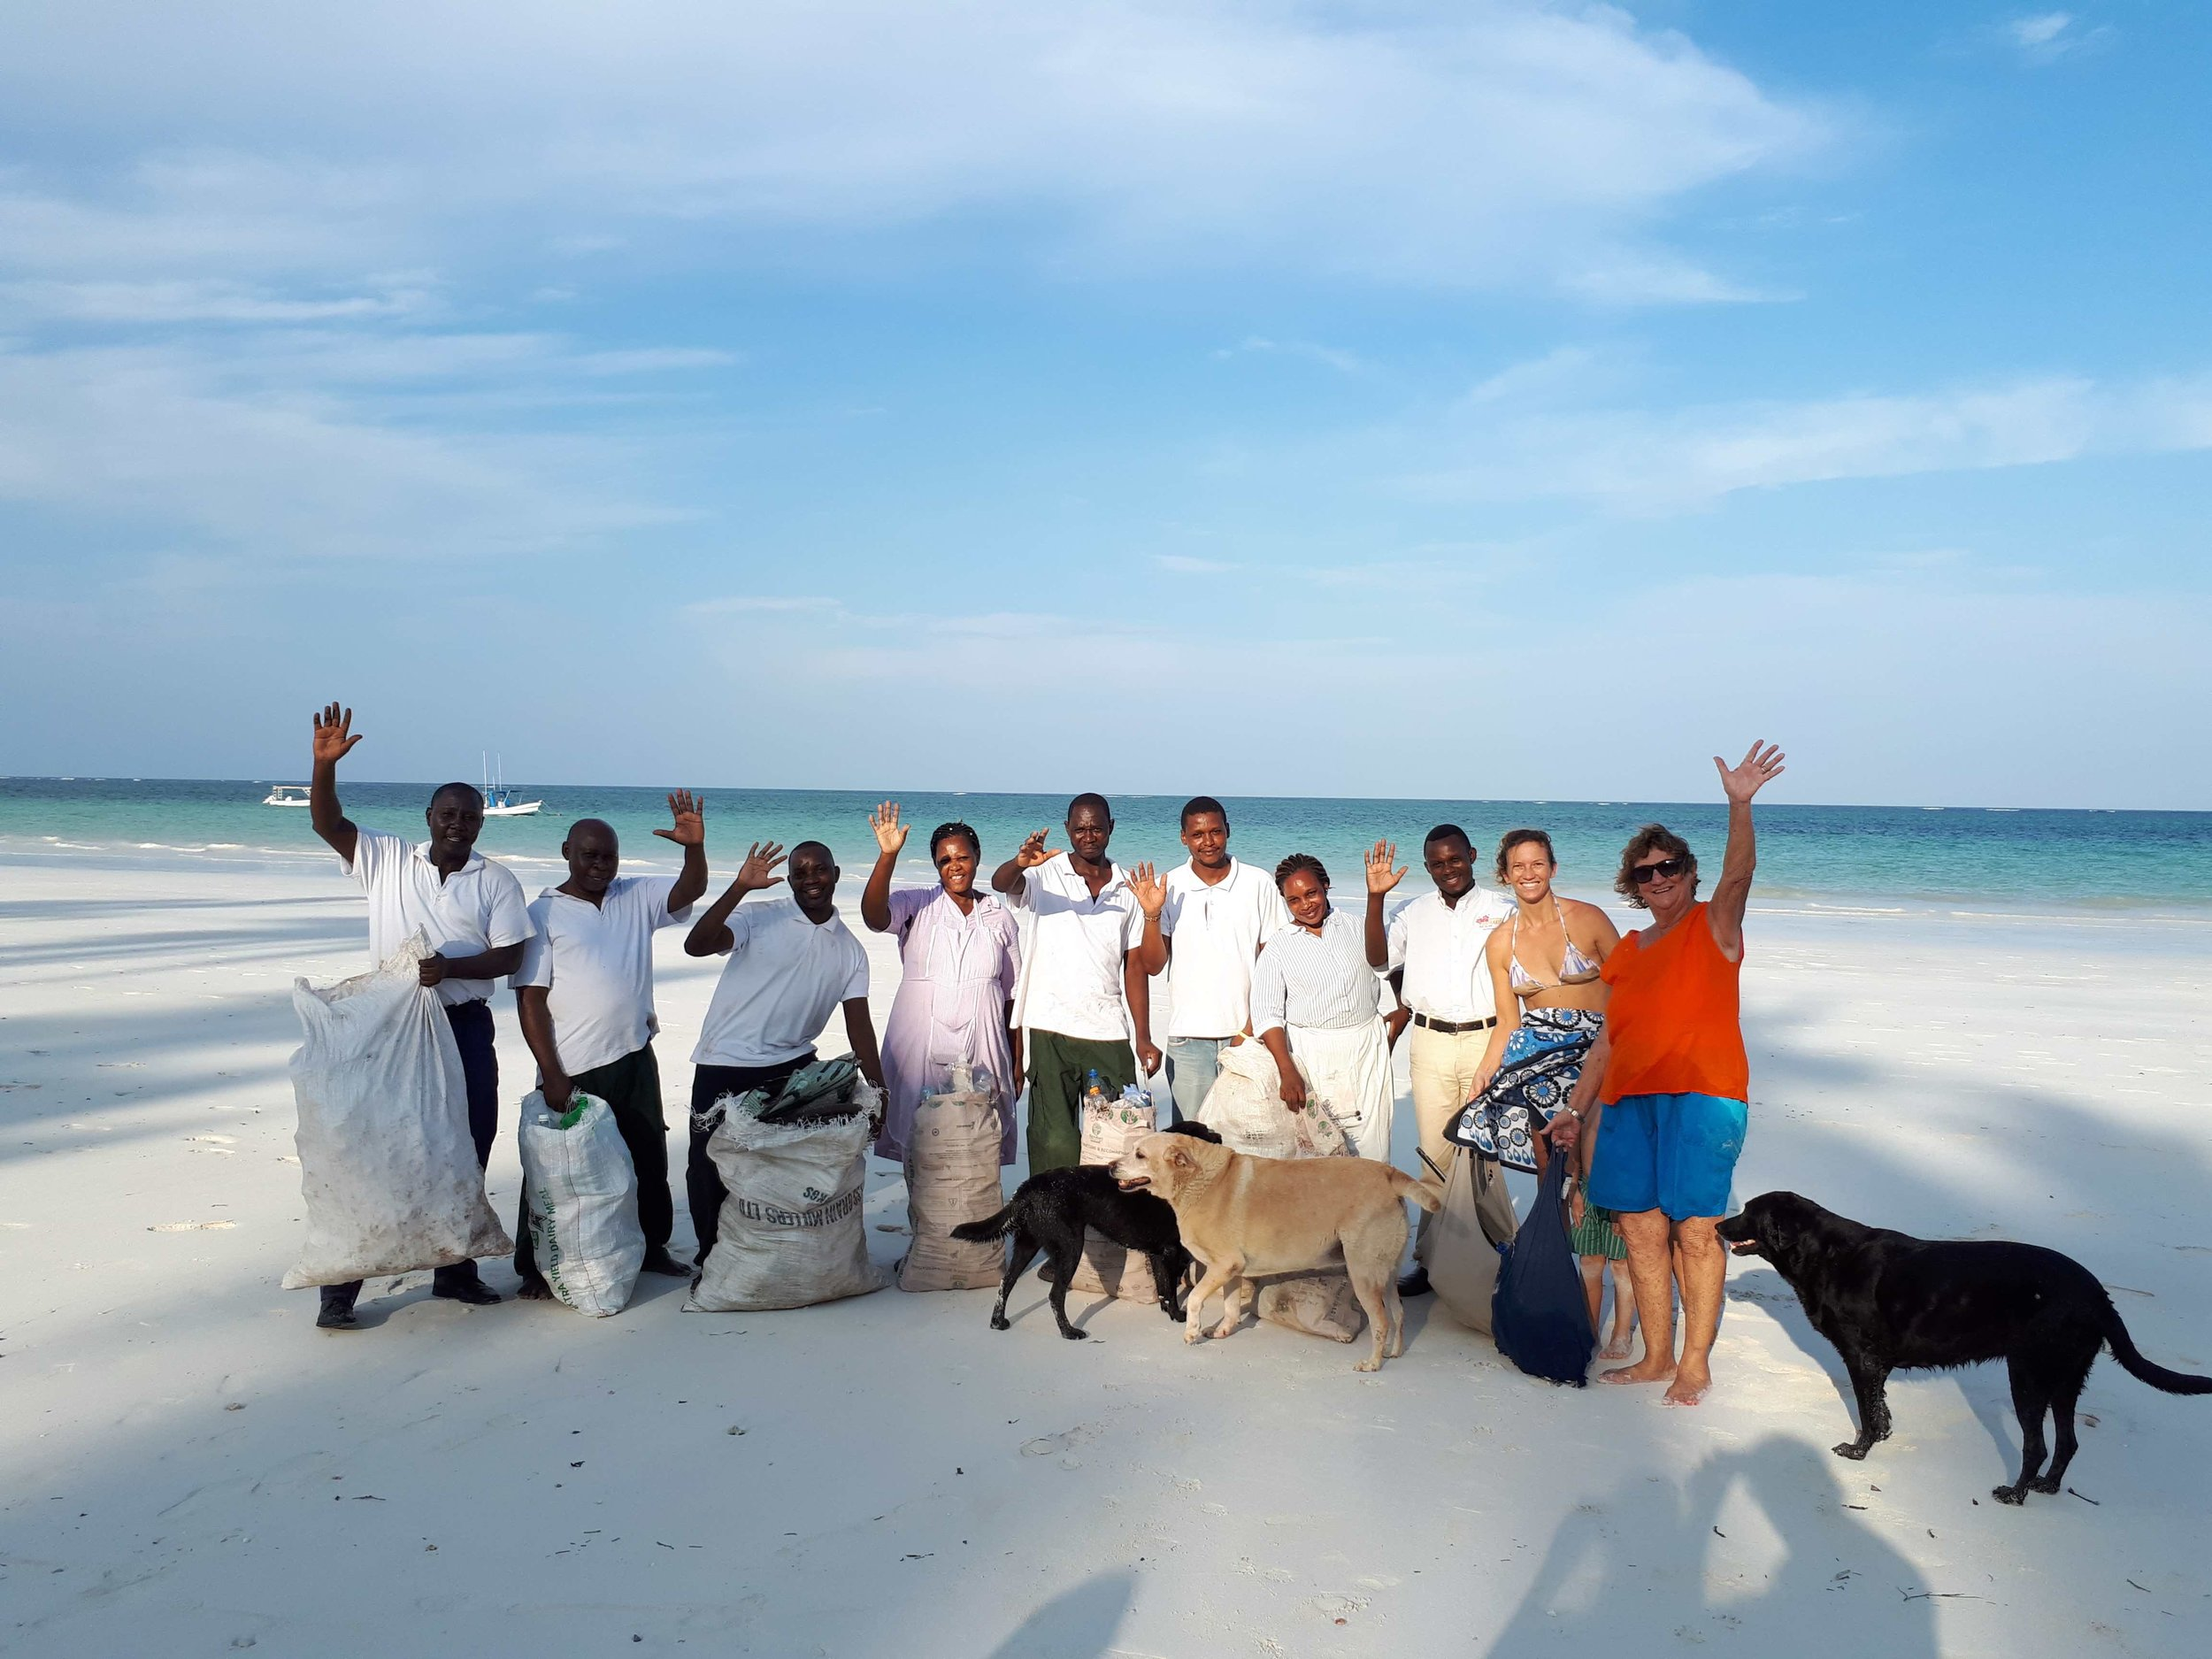 kenyaways team doing beach clean up together